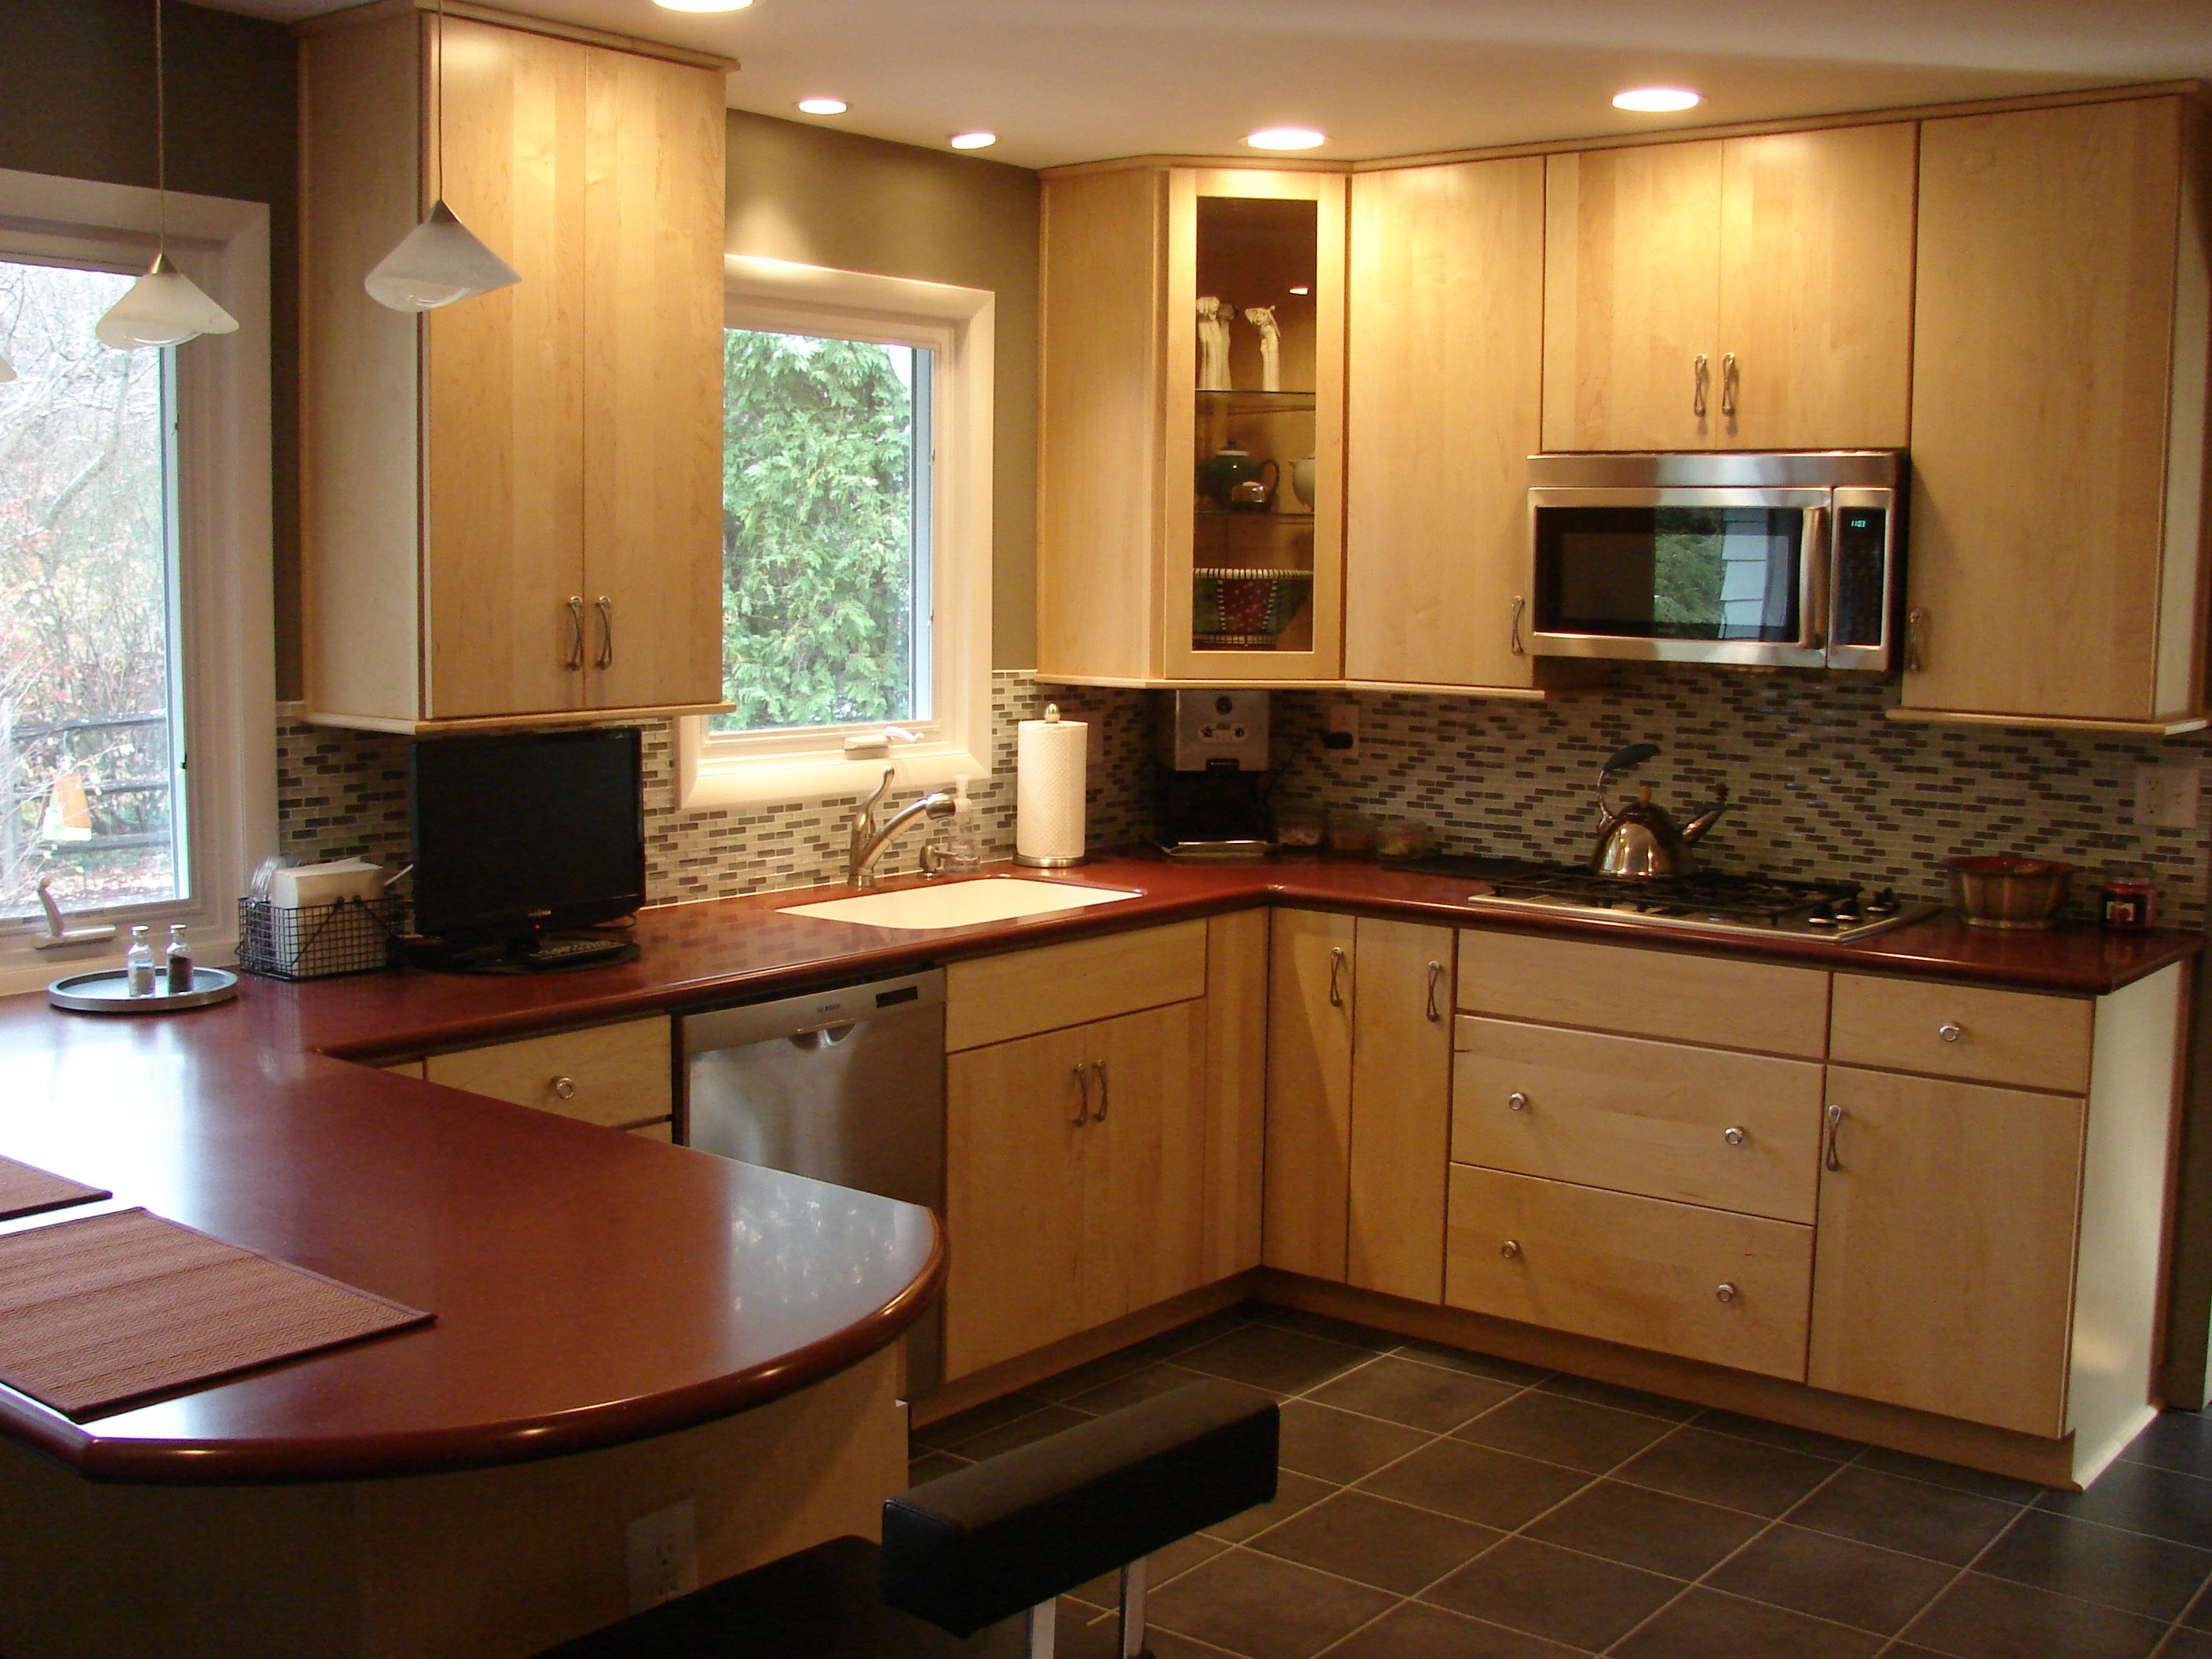 Recommendation recessed lights shower kitchen r c ligh ceiling recommendation recessed lights shower kitchen r c ligh ceiling lights recommendation recessed lights shower kitchen recommendation rec aloadofball Choice Image